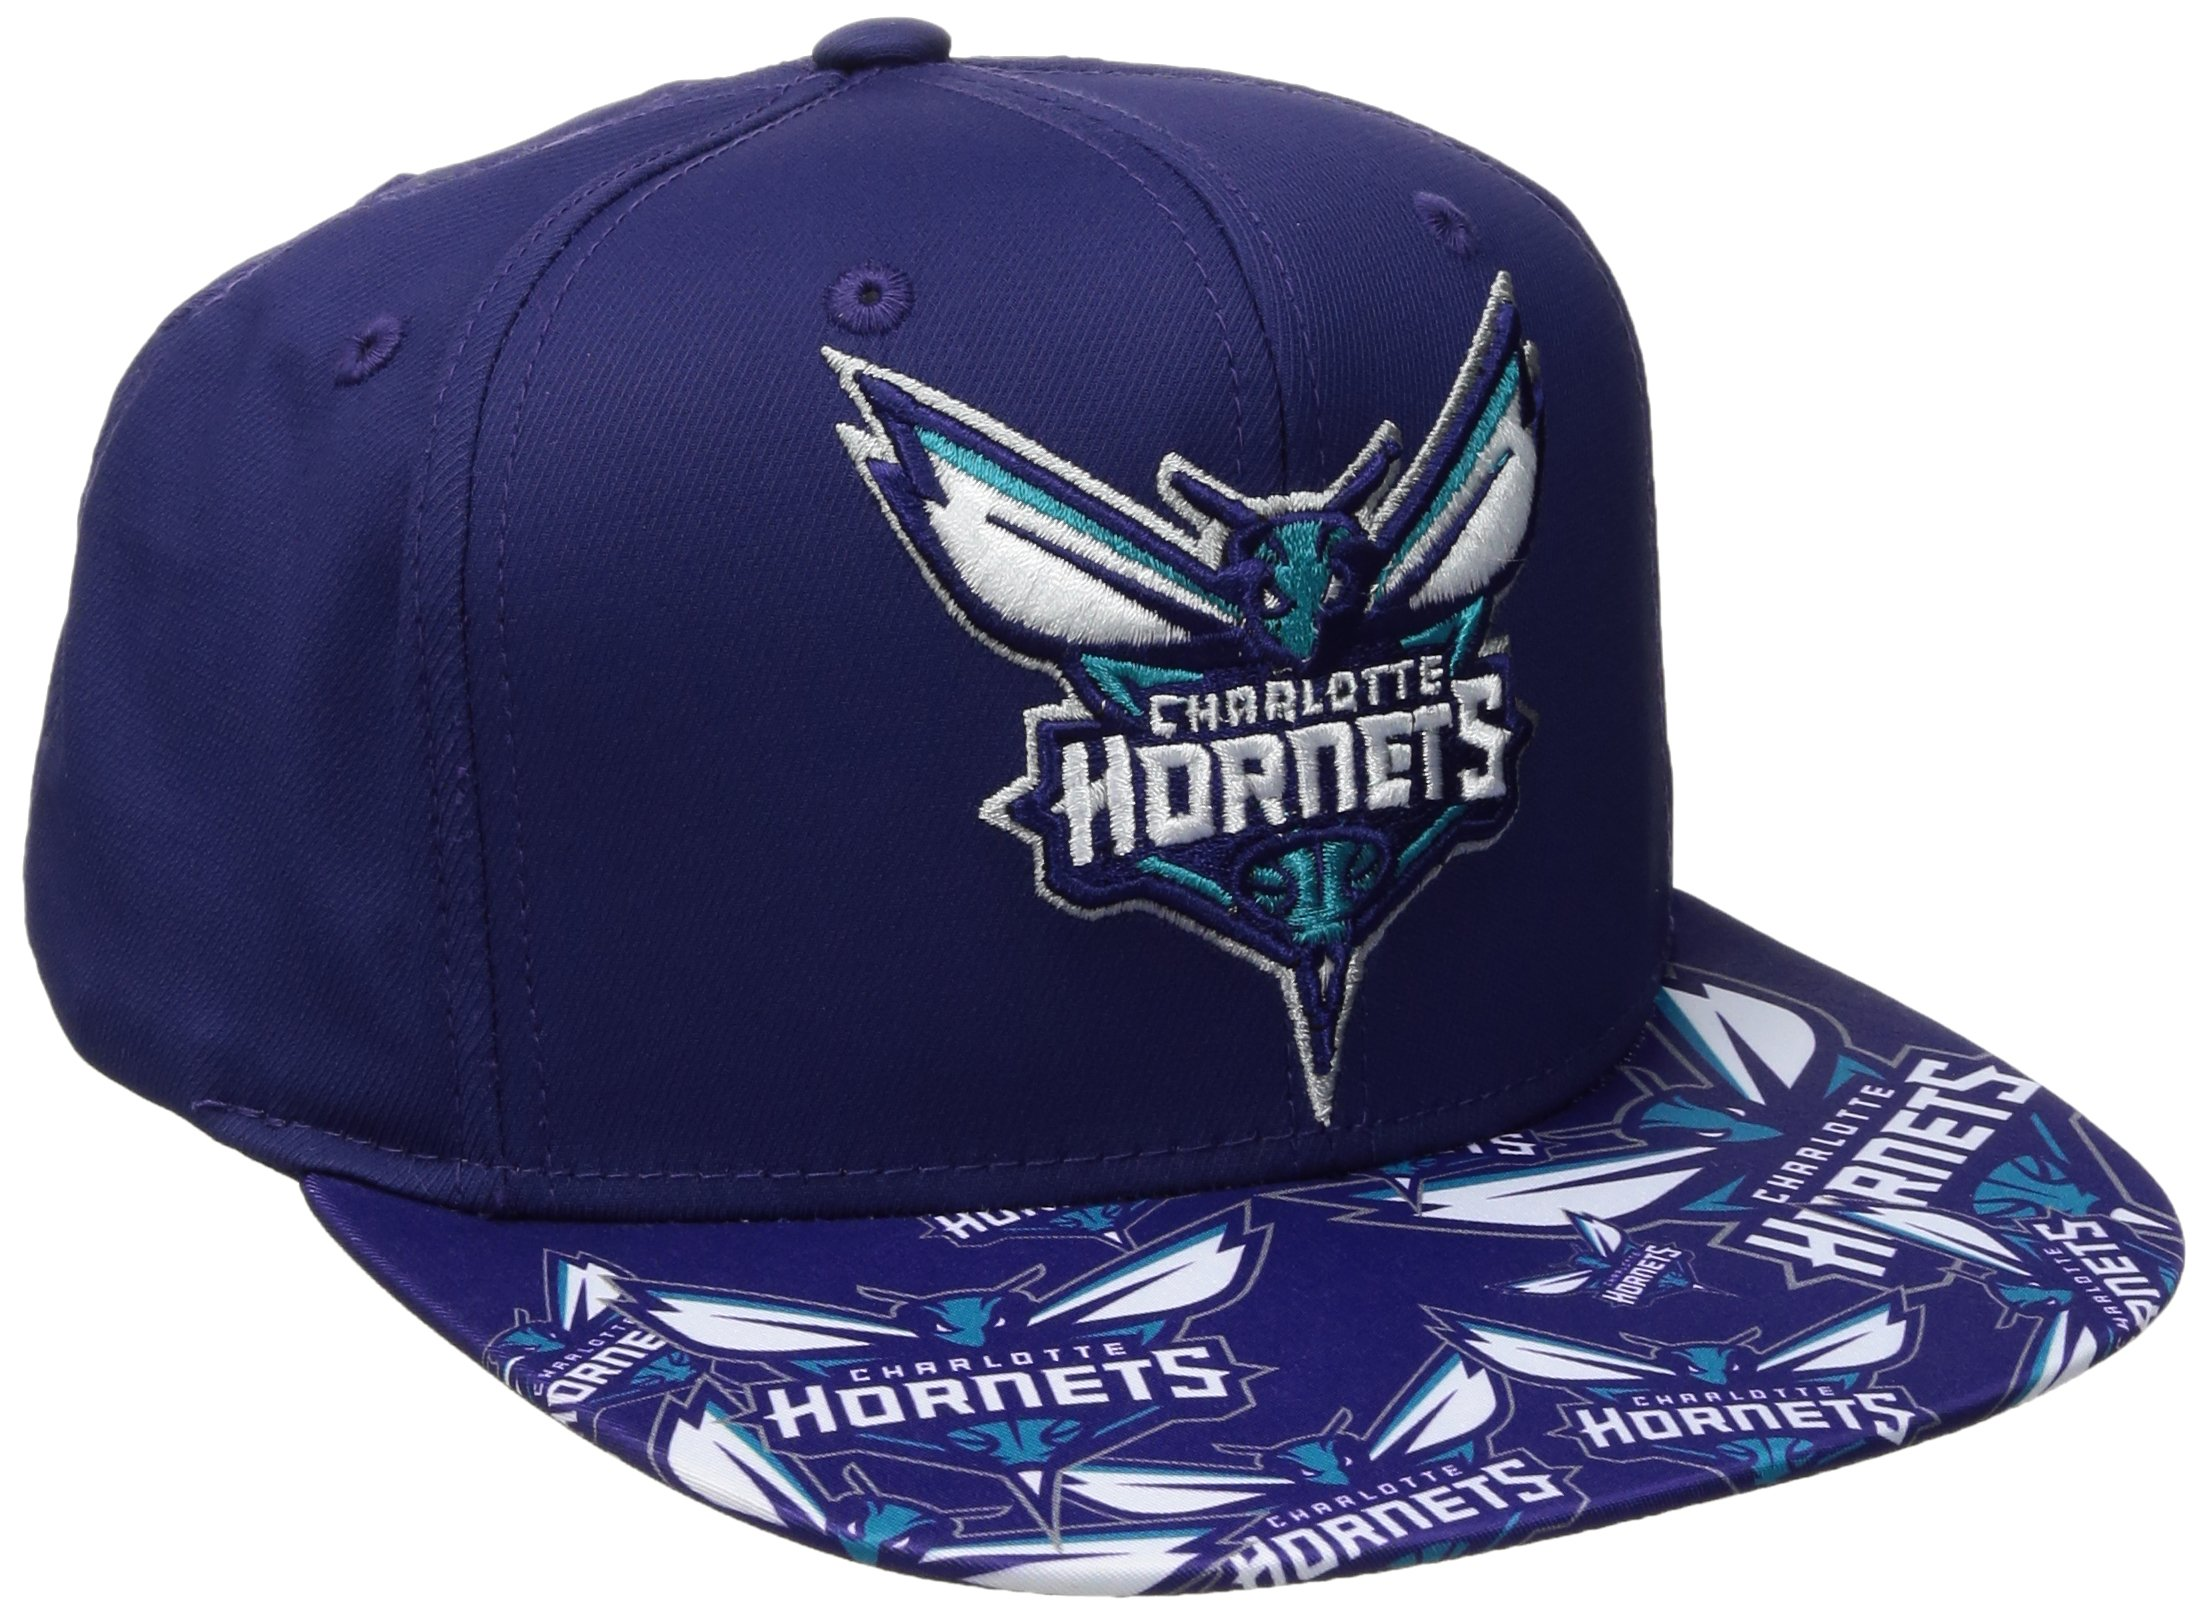 NBA Charlotte Hornets Men's Tail Sweep Flat Brim Snapback Hat, Purple, One Size by adidas